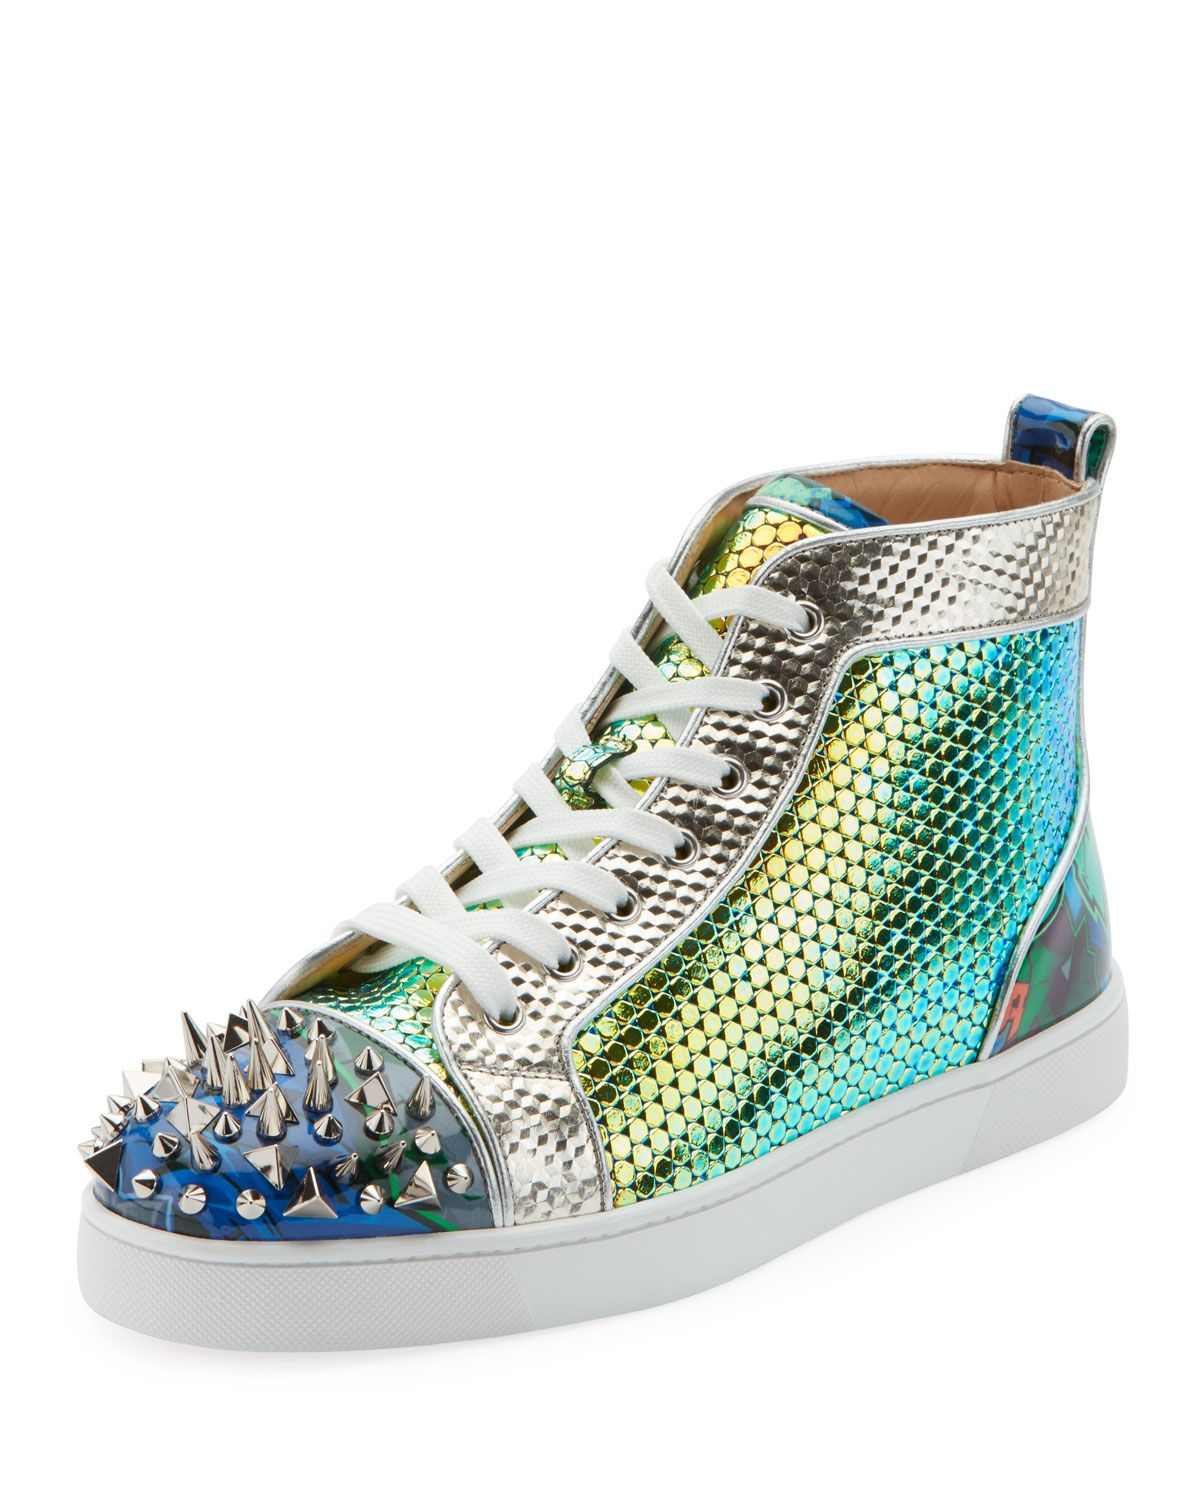 designer fashion b03cc 4d53a CHRISTIAN LOUBOUTIN MEN'S SPIKED METALLIC HOLOGRAPHIC MID ...